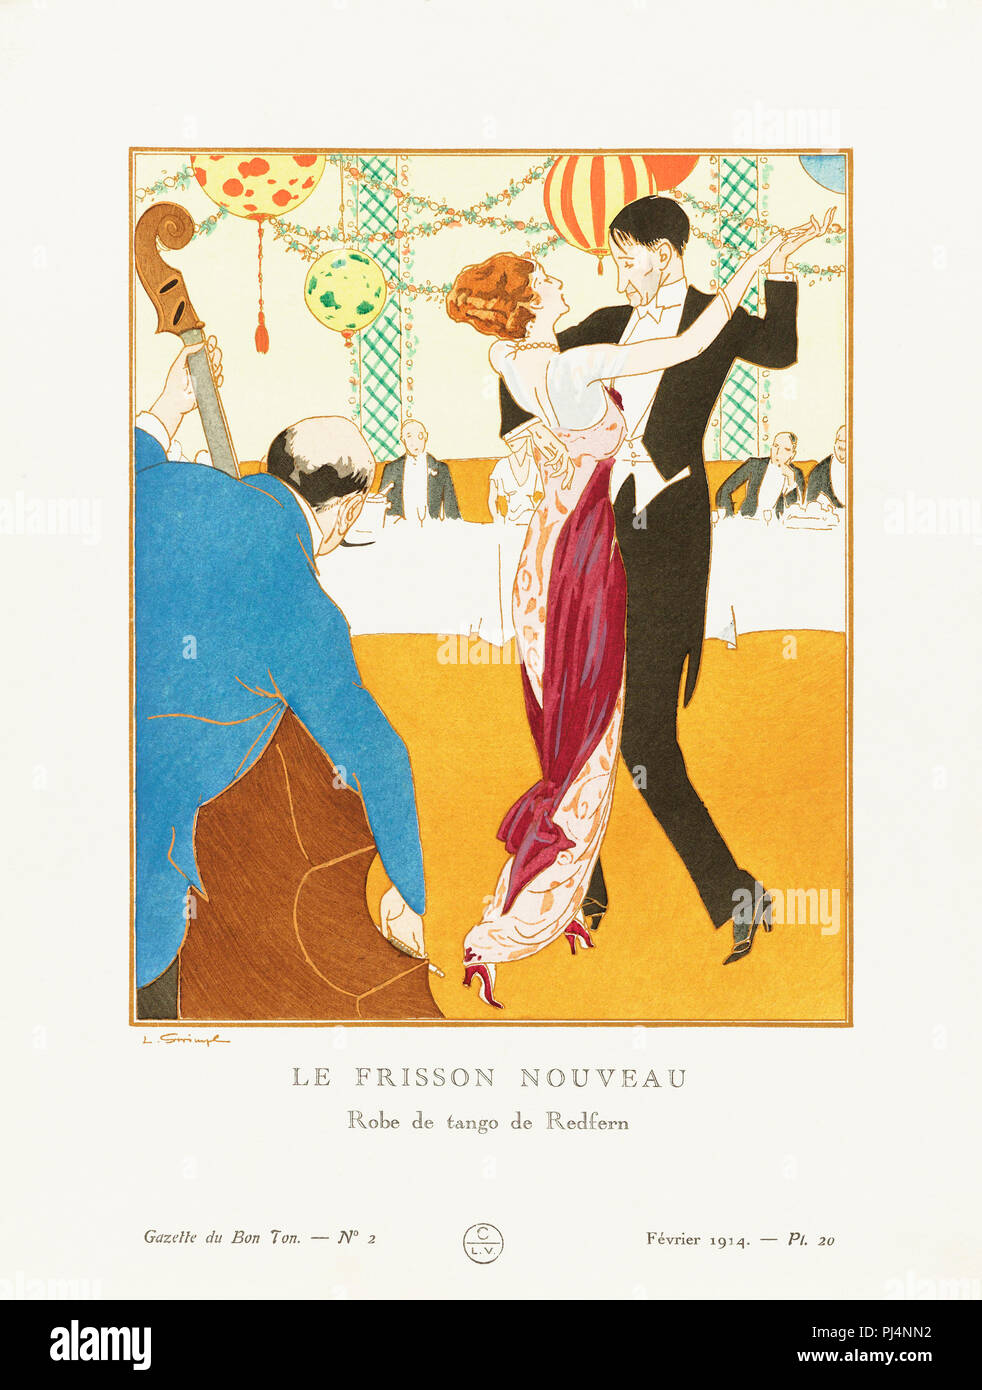 Le Frisson Nouveau.  A New Thrill.  Robe de tango de Redfern.  Tango dress by Redfern.  Art-deco fashion illustration by Czech artist Ludvik Strimpl,1880-1937.  The work was created for the Gazette du Bon Ton, a Parisian fashion magazine published between 1912-1915 and 1919-1925. - Stock Image